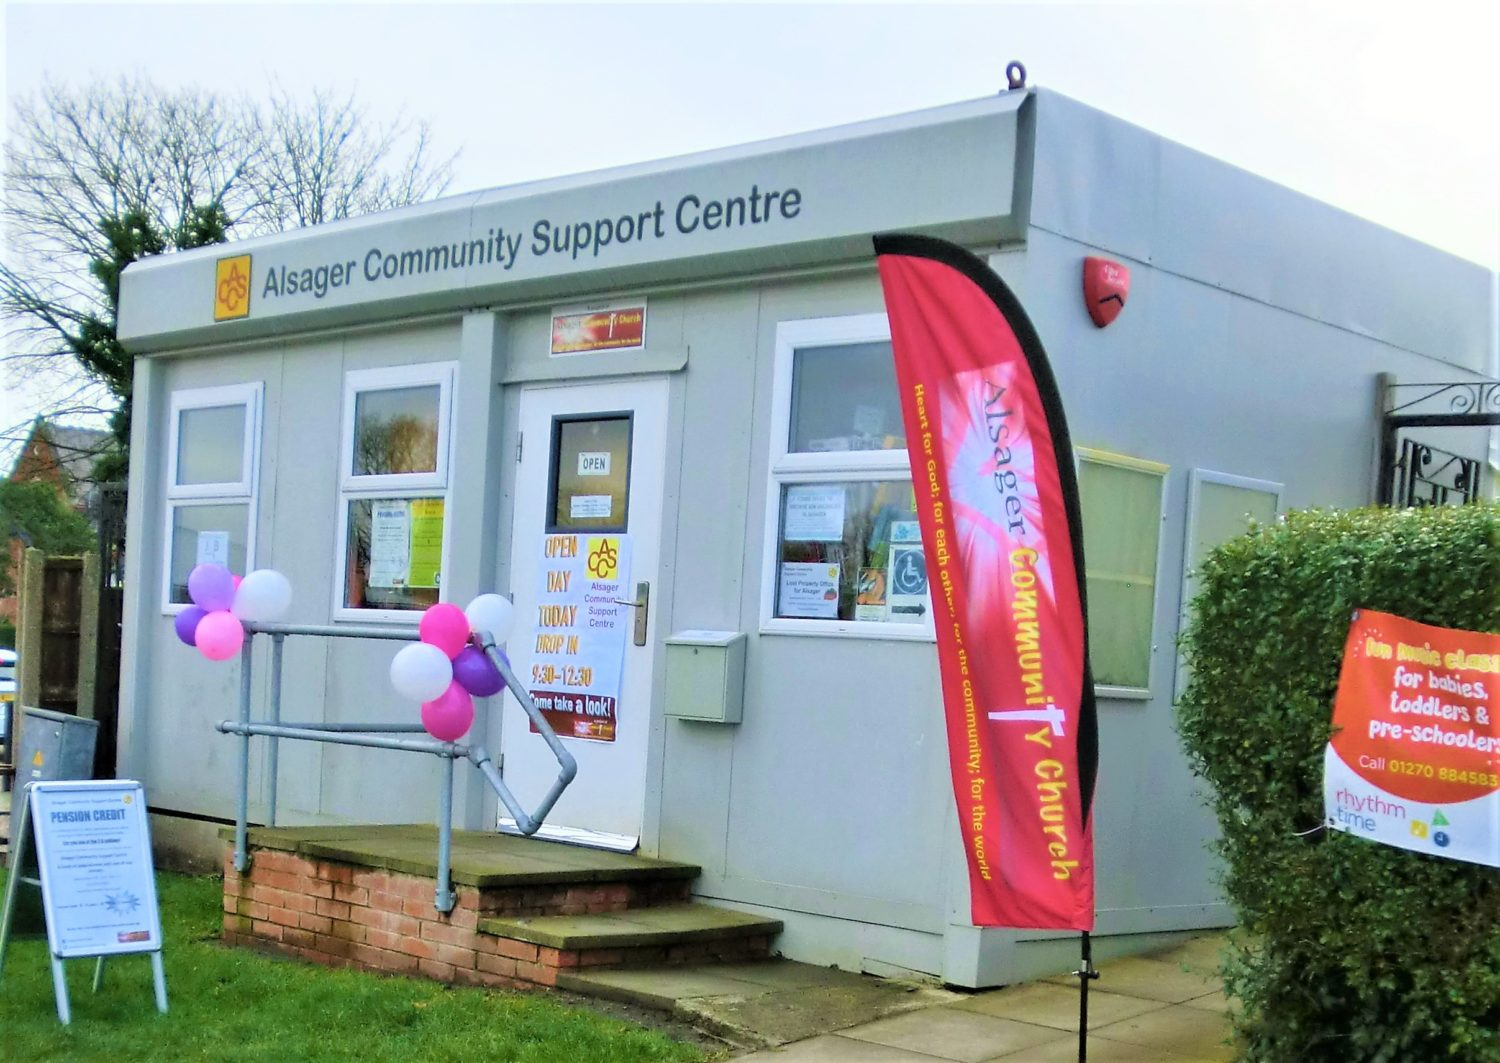 Alsager Community Support Centre